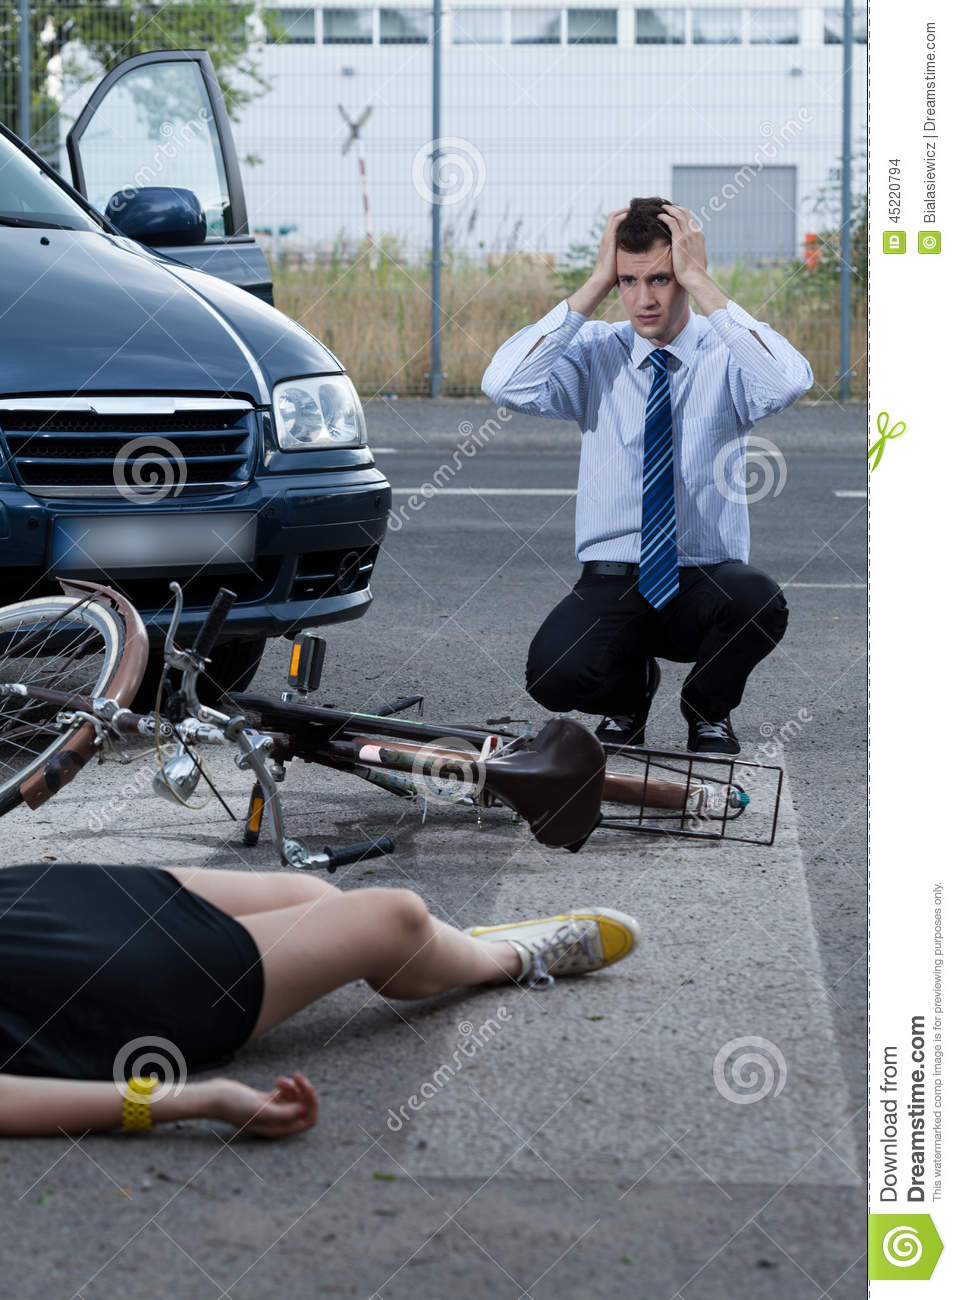 Woman After Accident On Bike Stock Photo - Image: 45220794